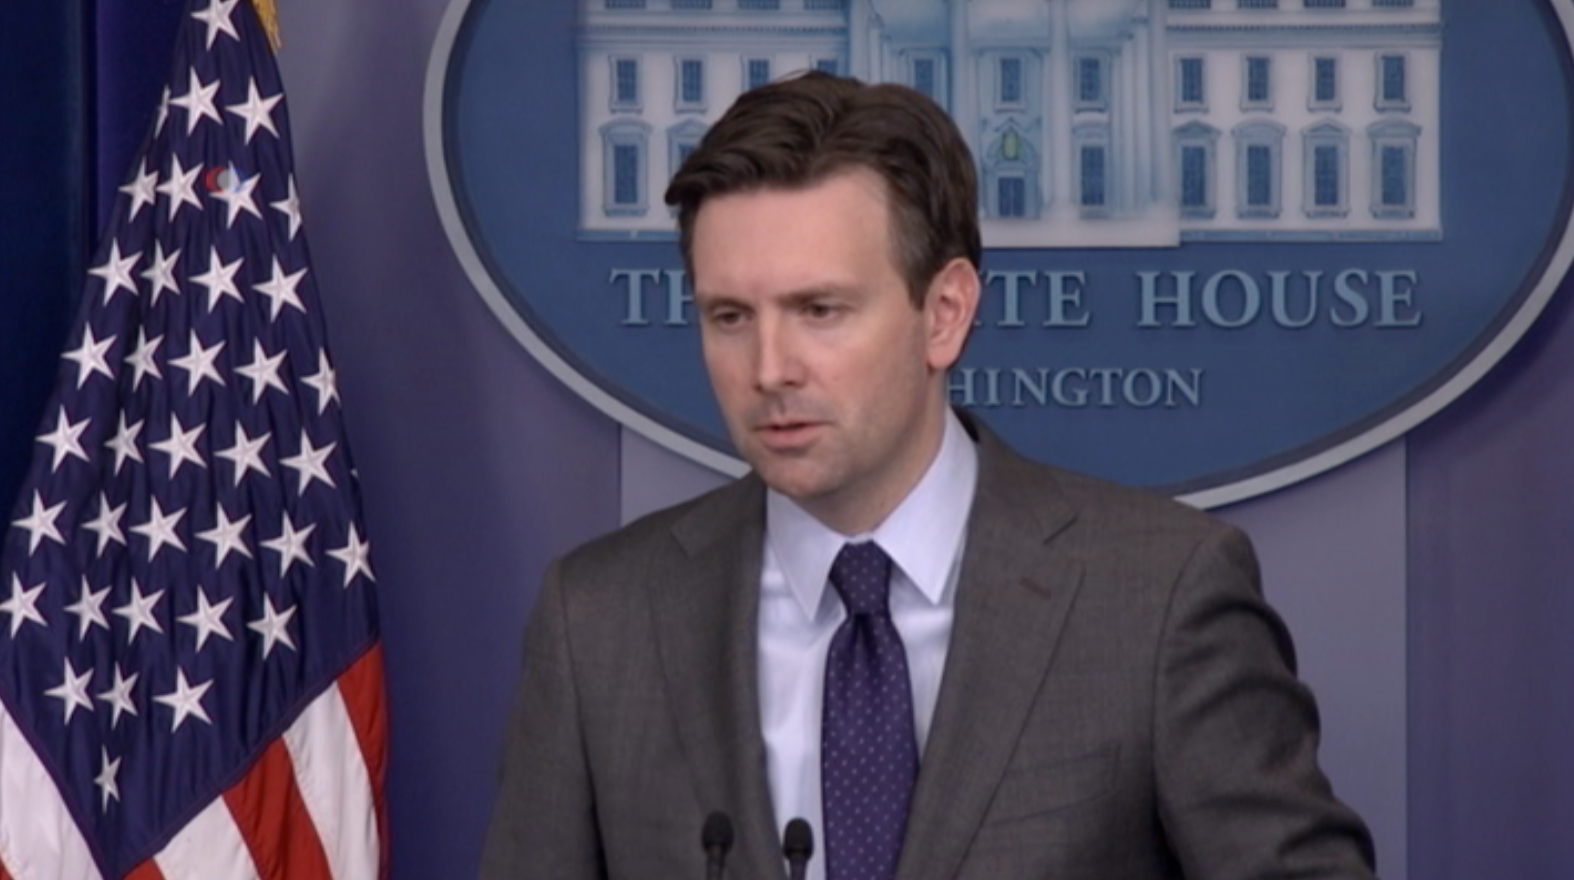 Image result for Josh Earnest photos